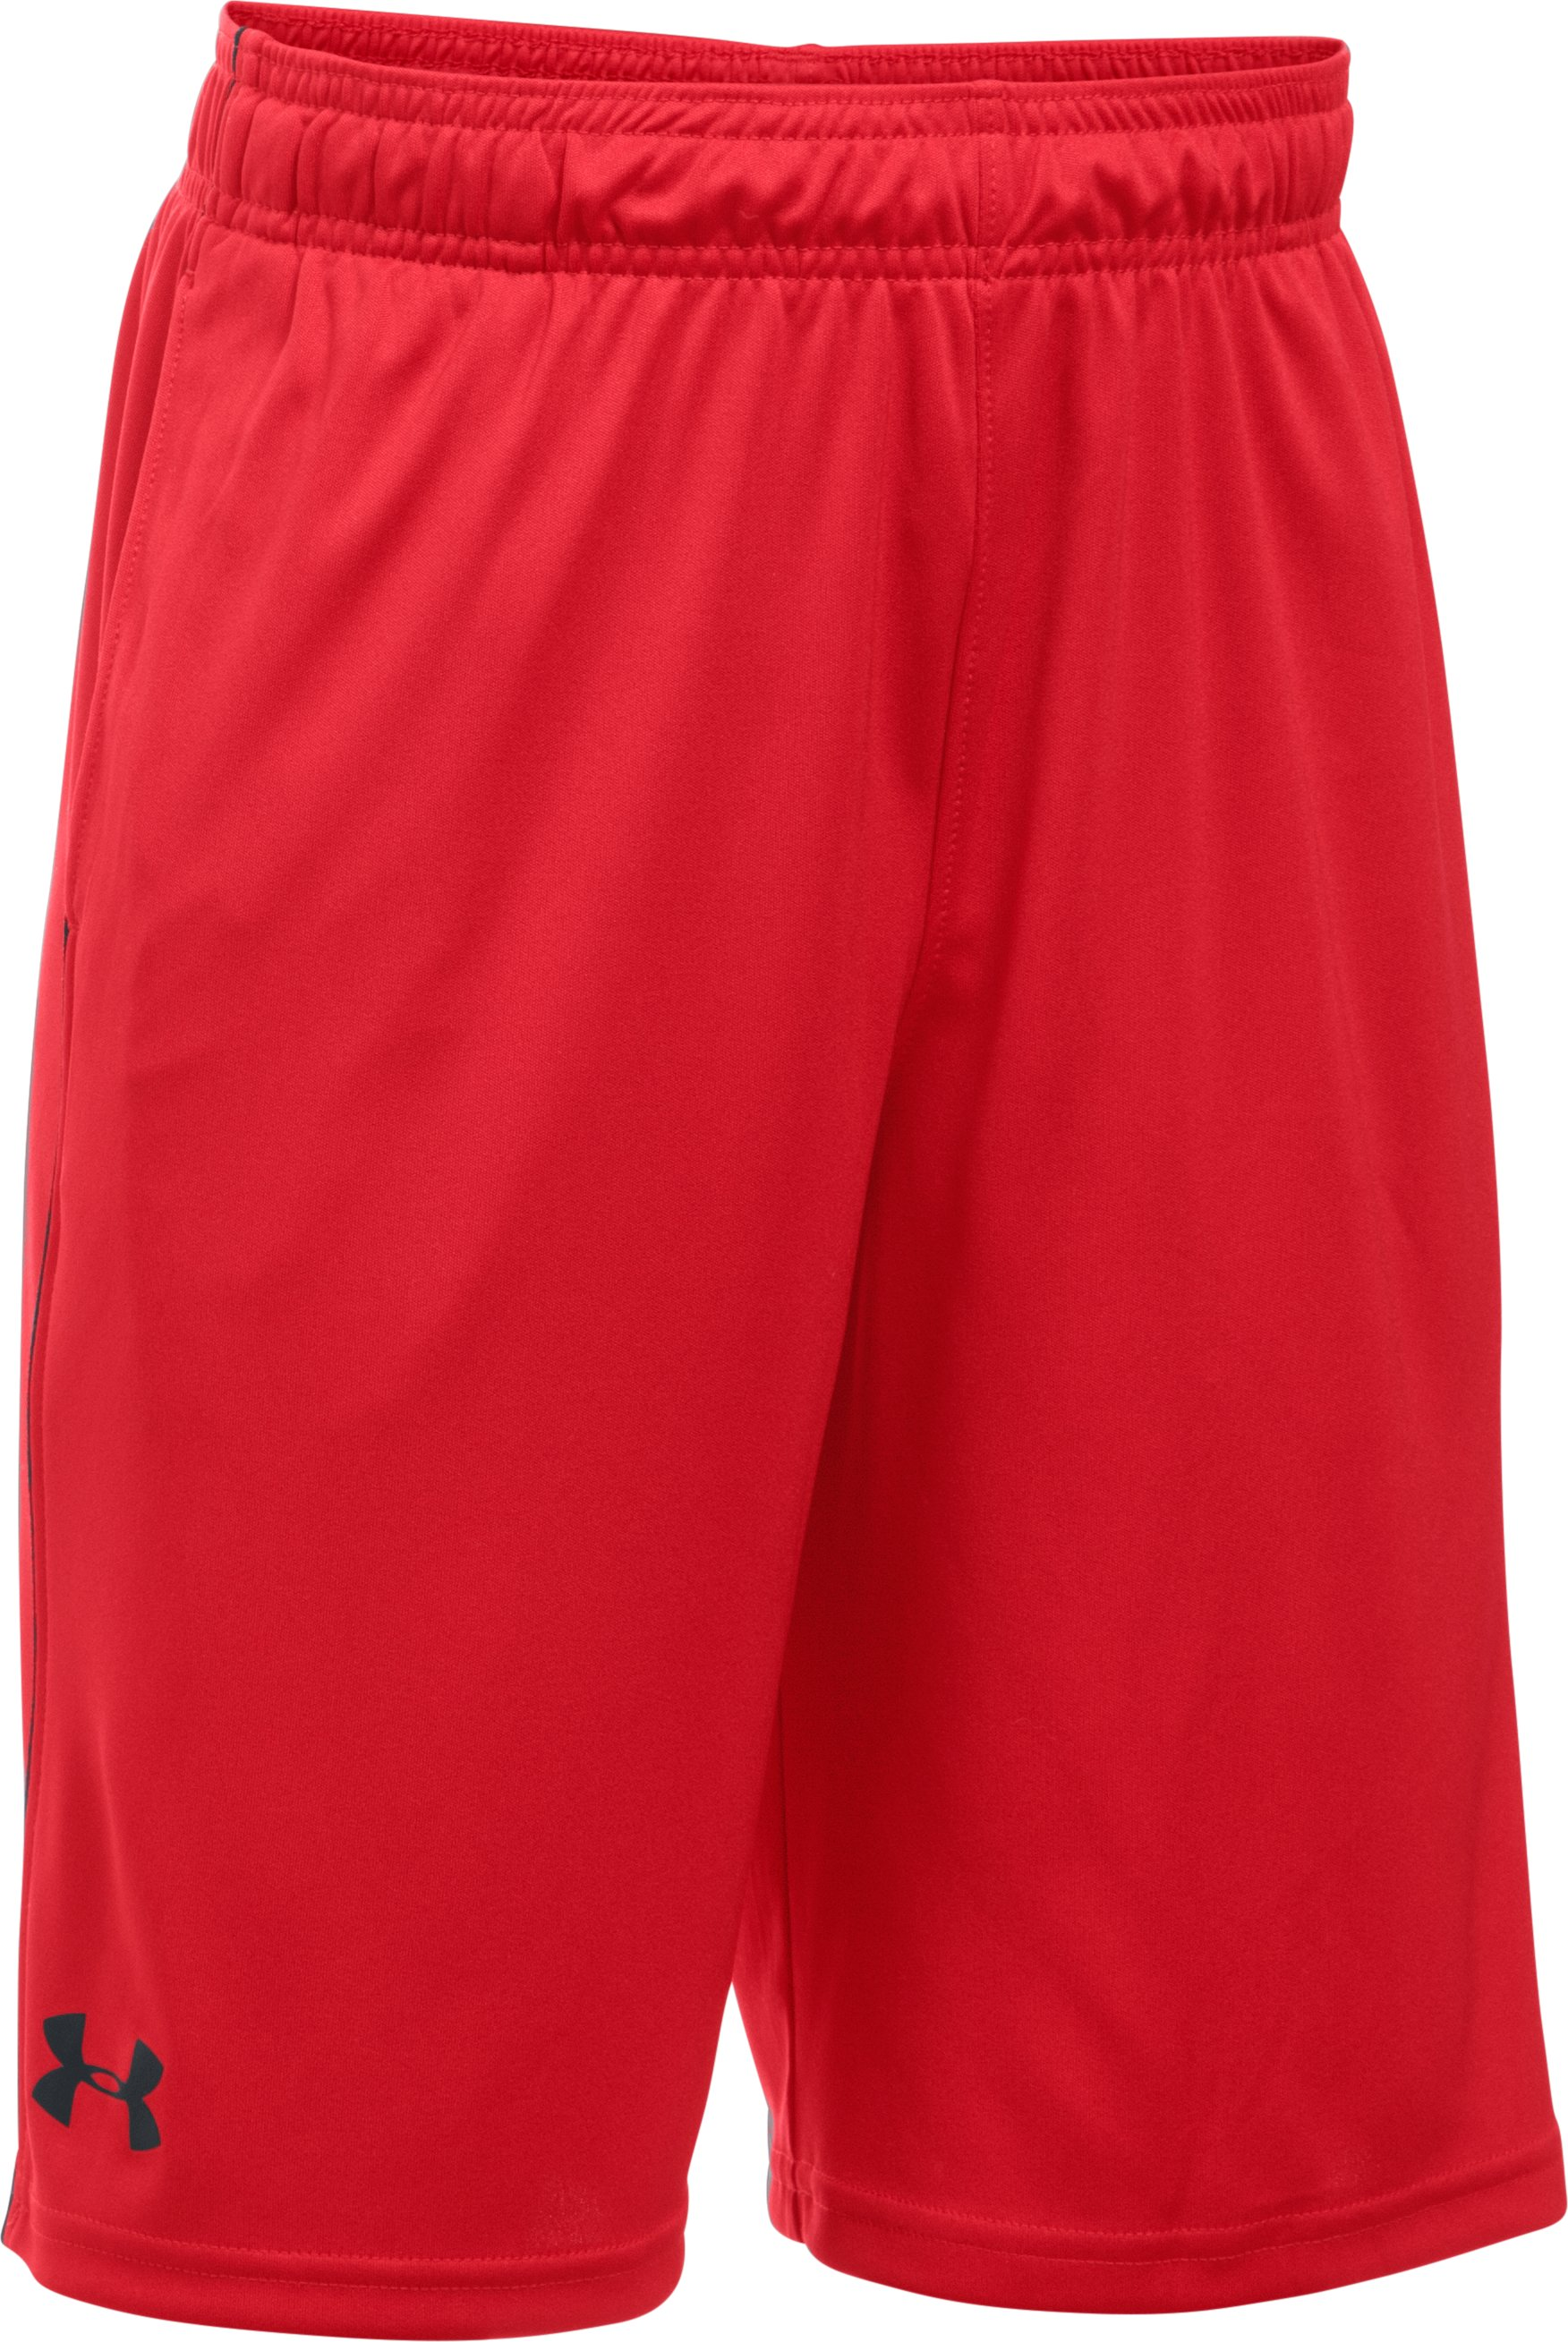 Boys' UA Tech™ Blocked Shorts, Red